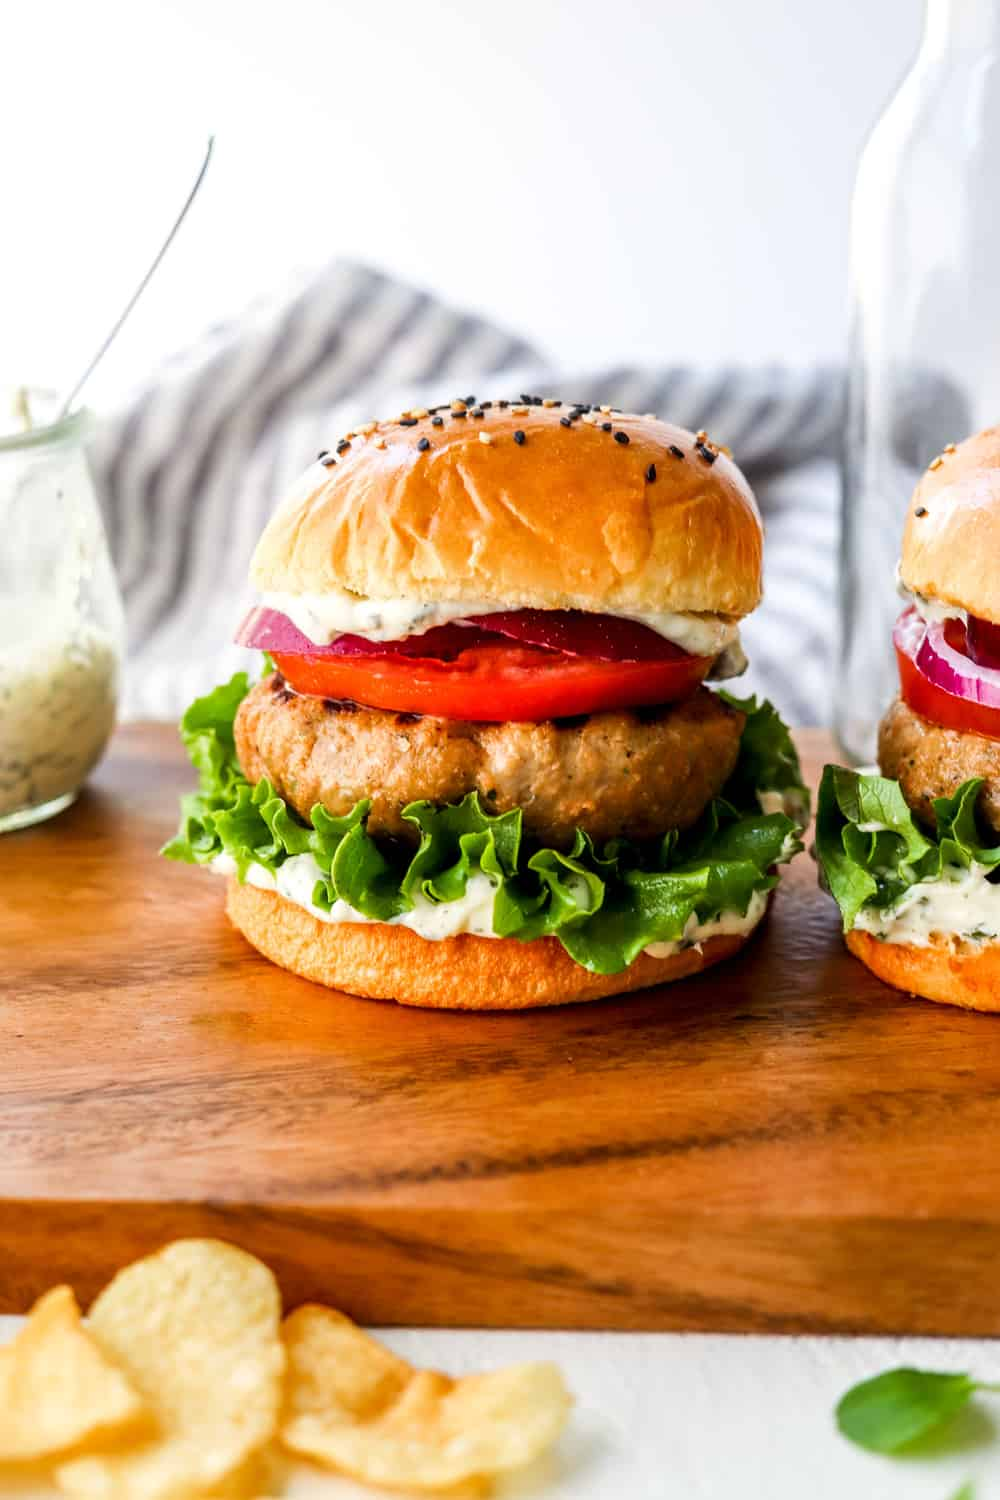 Burger made with turkey between a bun with mayo, lettuce and tomato on a wooden surface with another burger next to it.